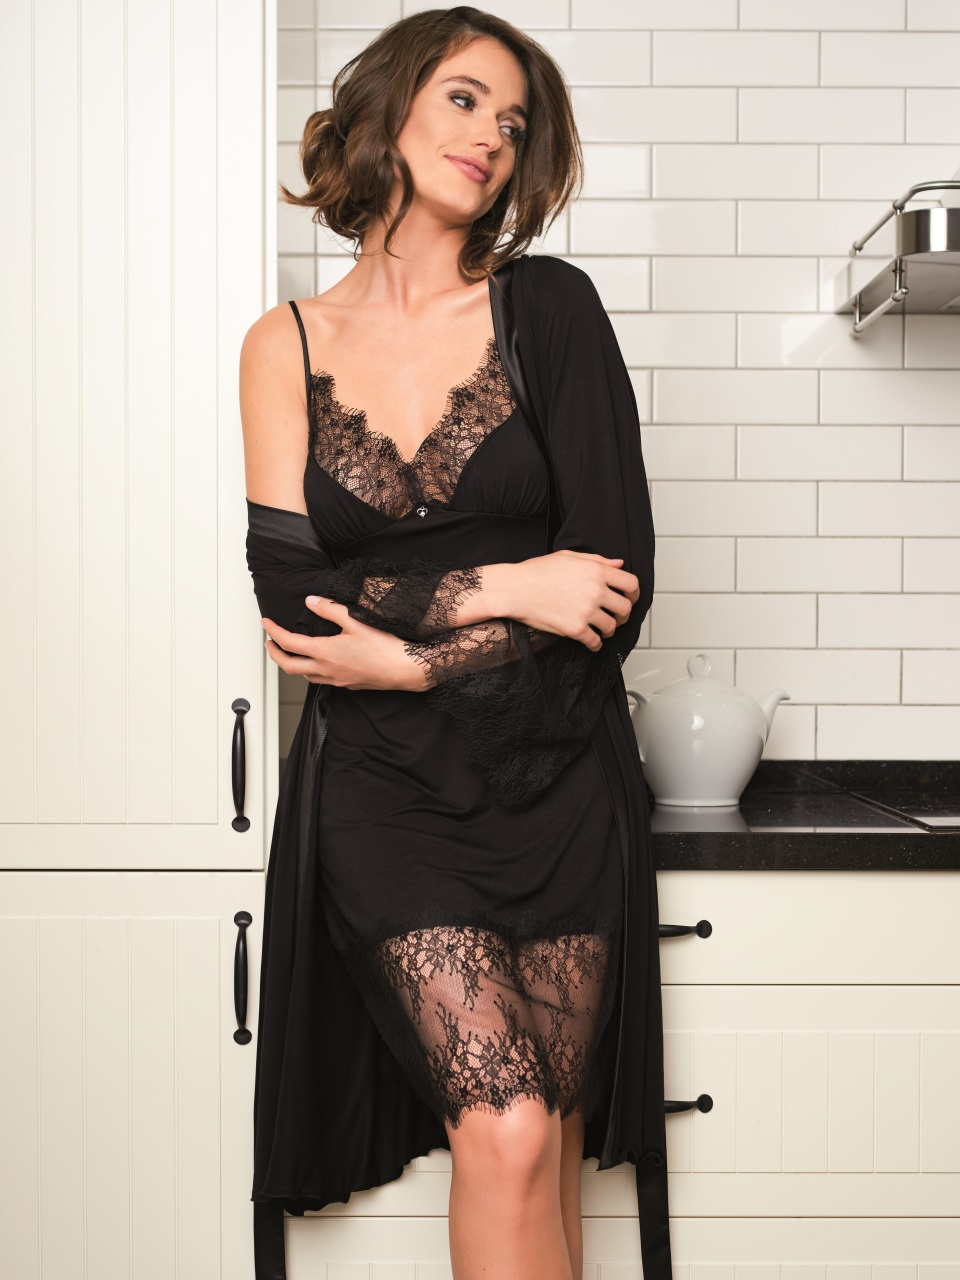 Susanna 3027 Chemise<br />01 Ivory, 02 Black, 07 Ruby, 28 Cappuccino<br />Susanna 3027 Vestaglia<br />01 Ivory, 02 Black, 07 Ruby, 28 Cappuccino